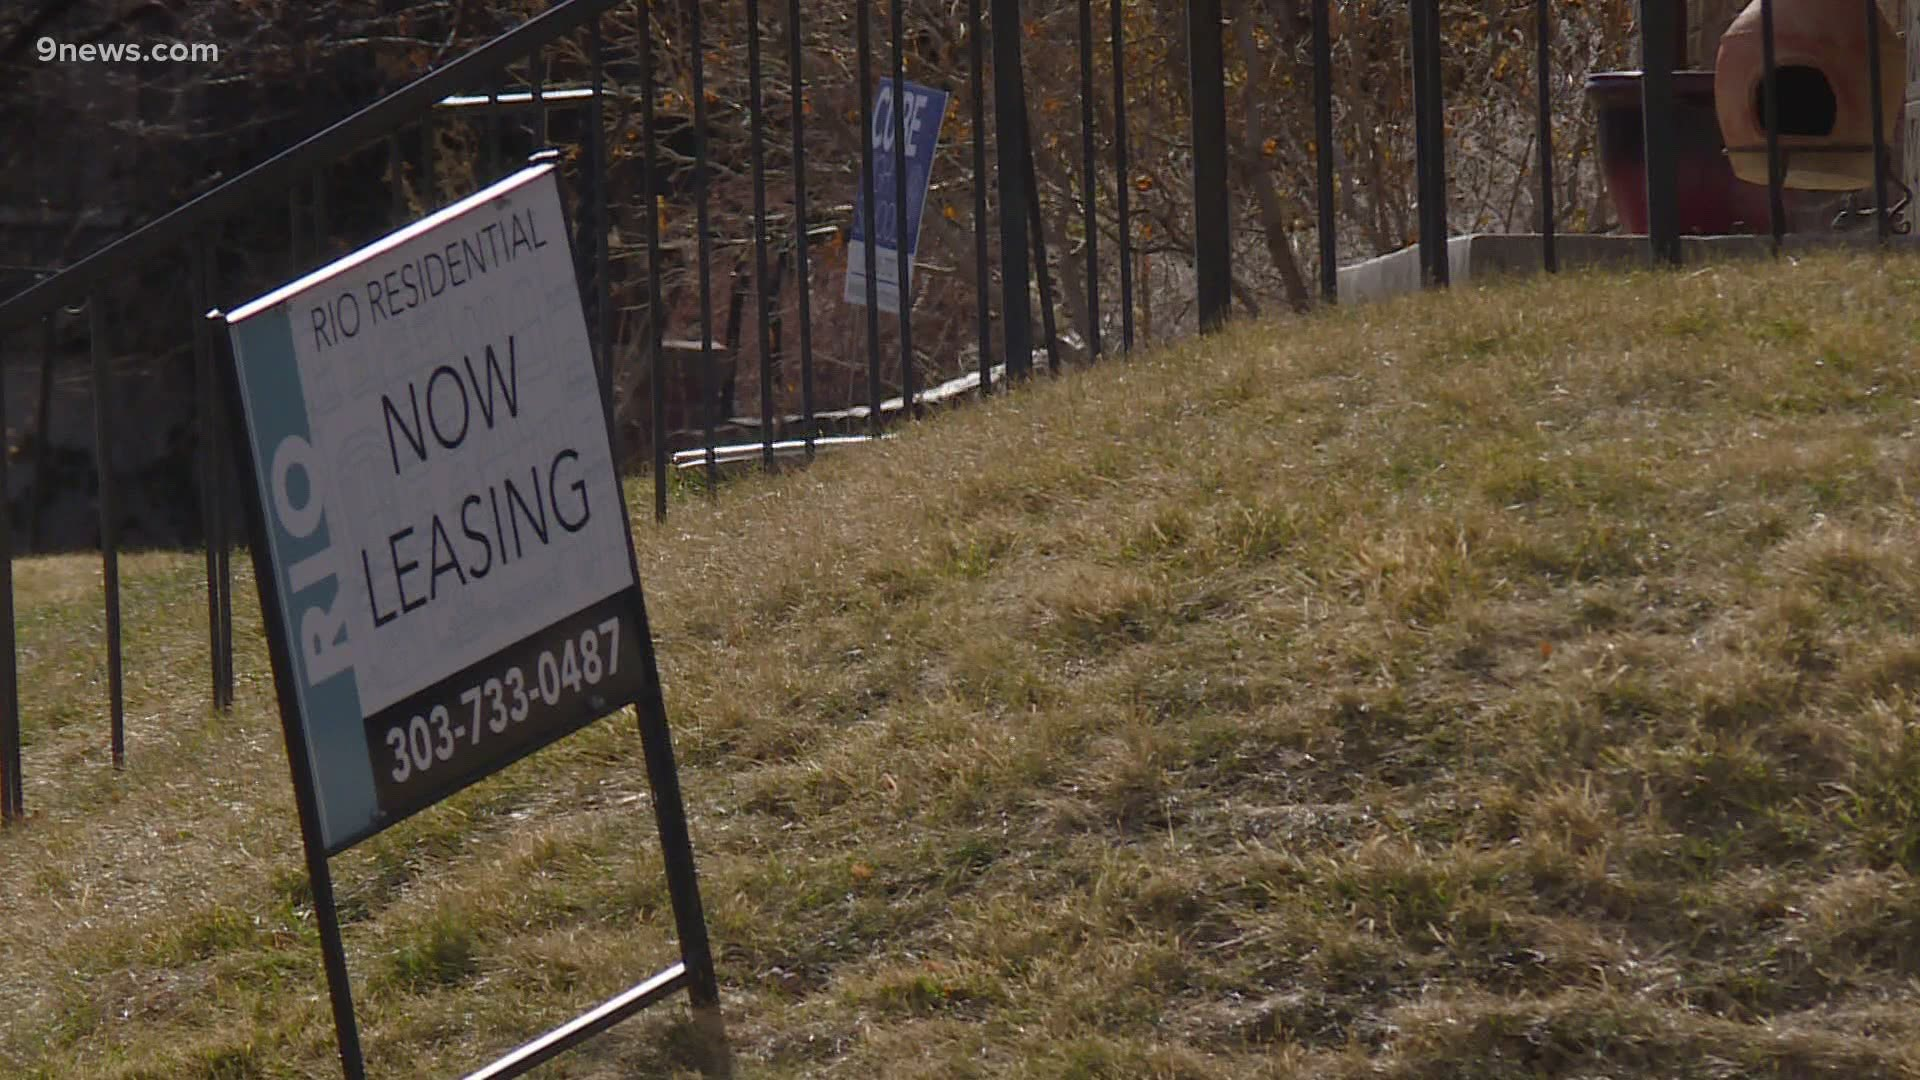 Rental Assistance Requests Spike In Colorado 9news Com